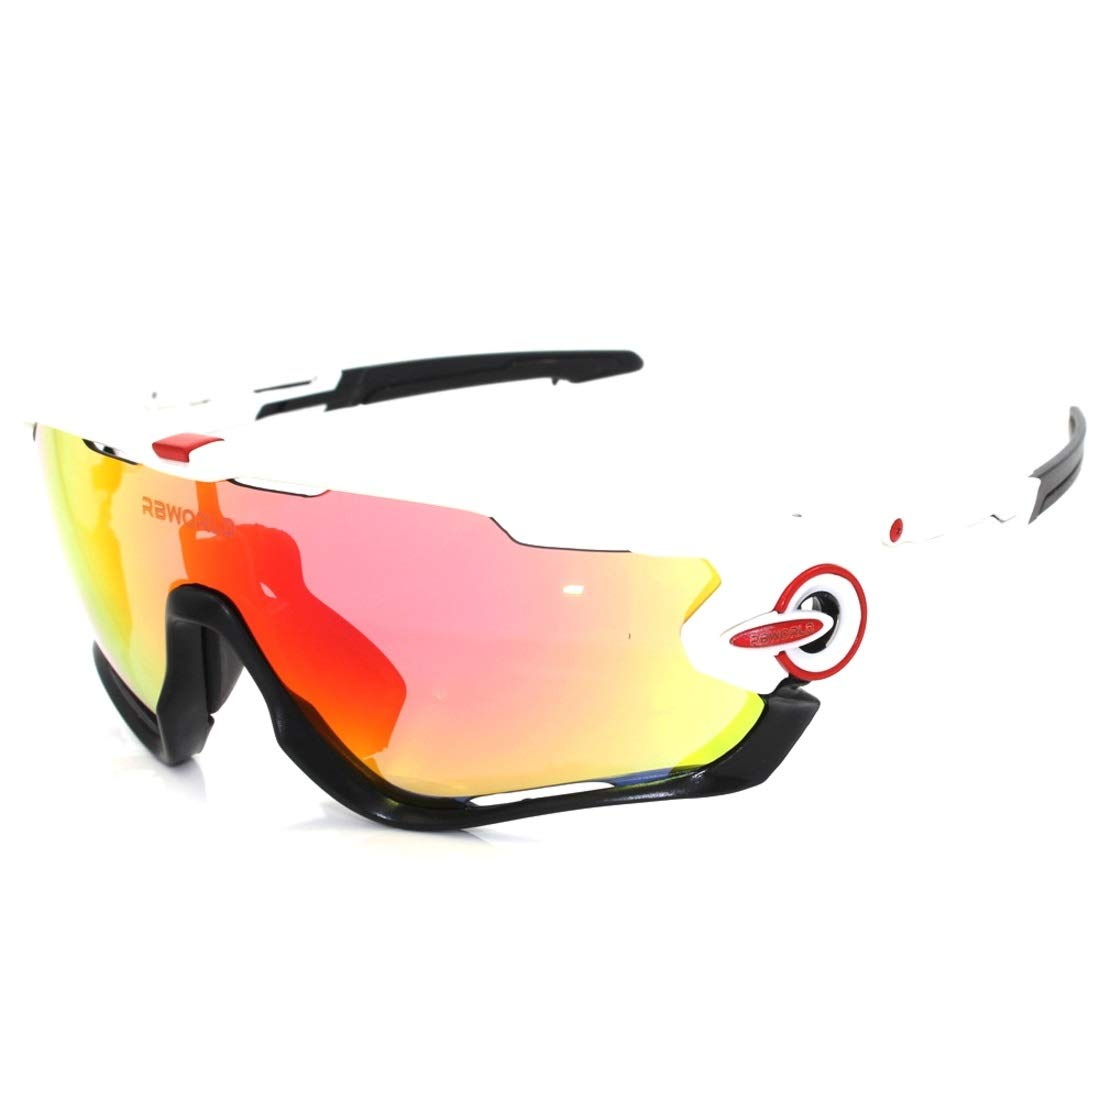 BAOYIT Riding Glasses Night Vision Fishing Mountaineering Running Sports Glasses Men and Women Riding Windproof Light Sports Glasses by BAOYIT